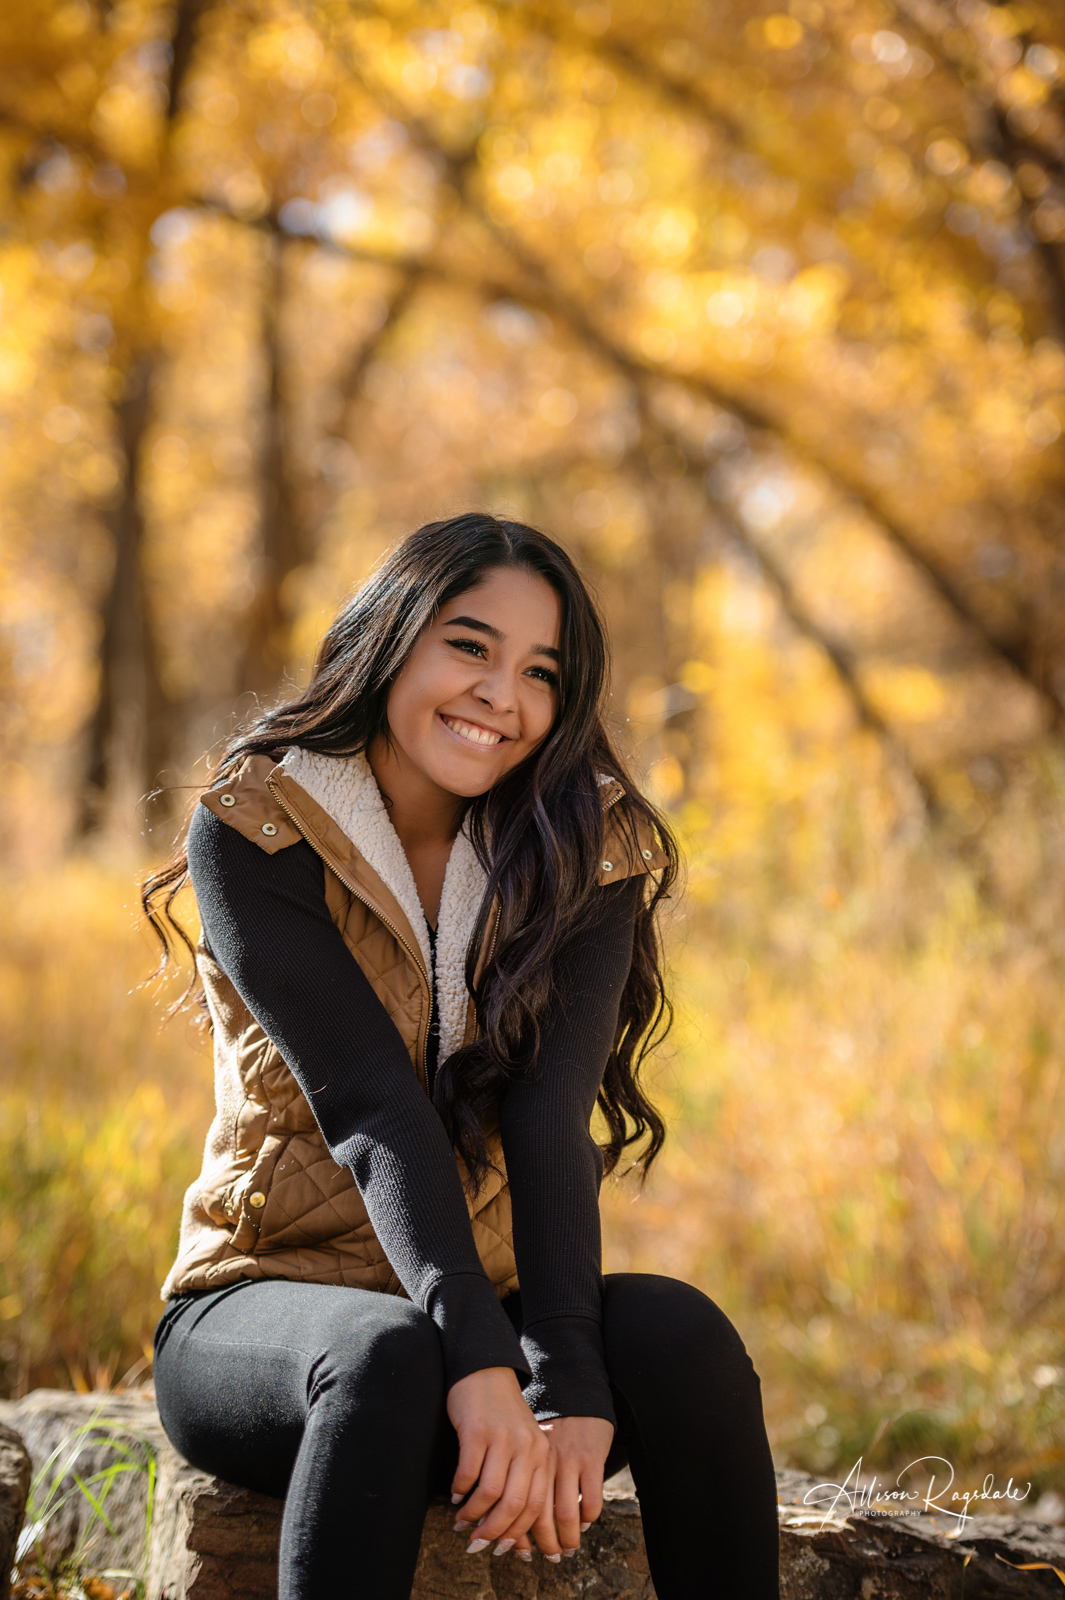 Charlize Valdez's Senior Pictures in the Fall Colors